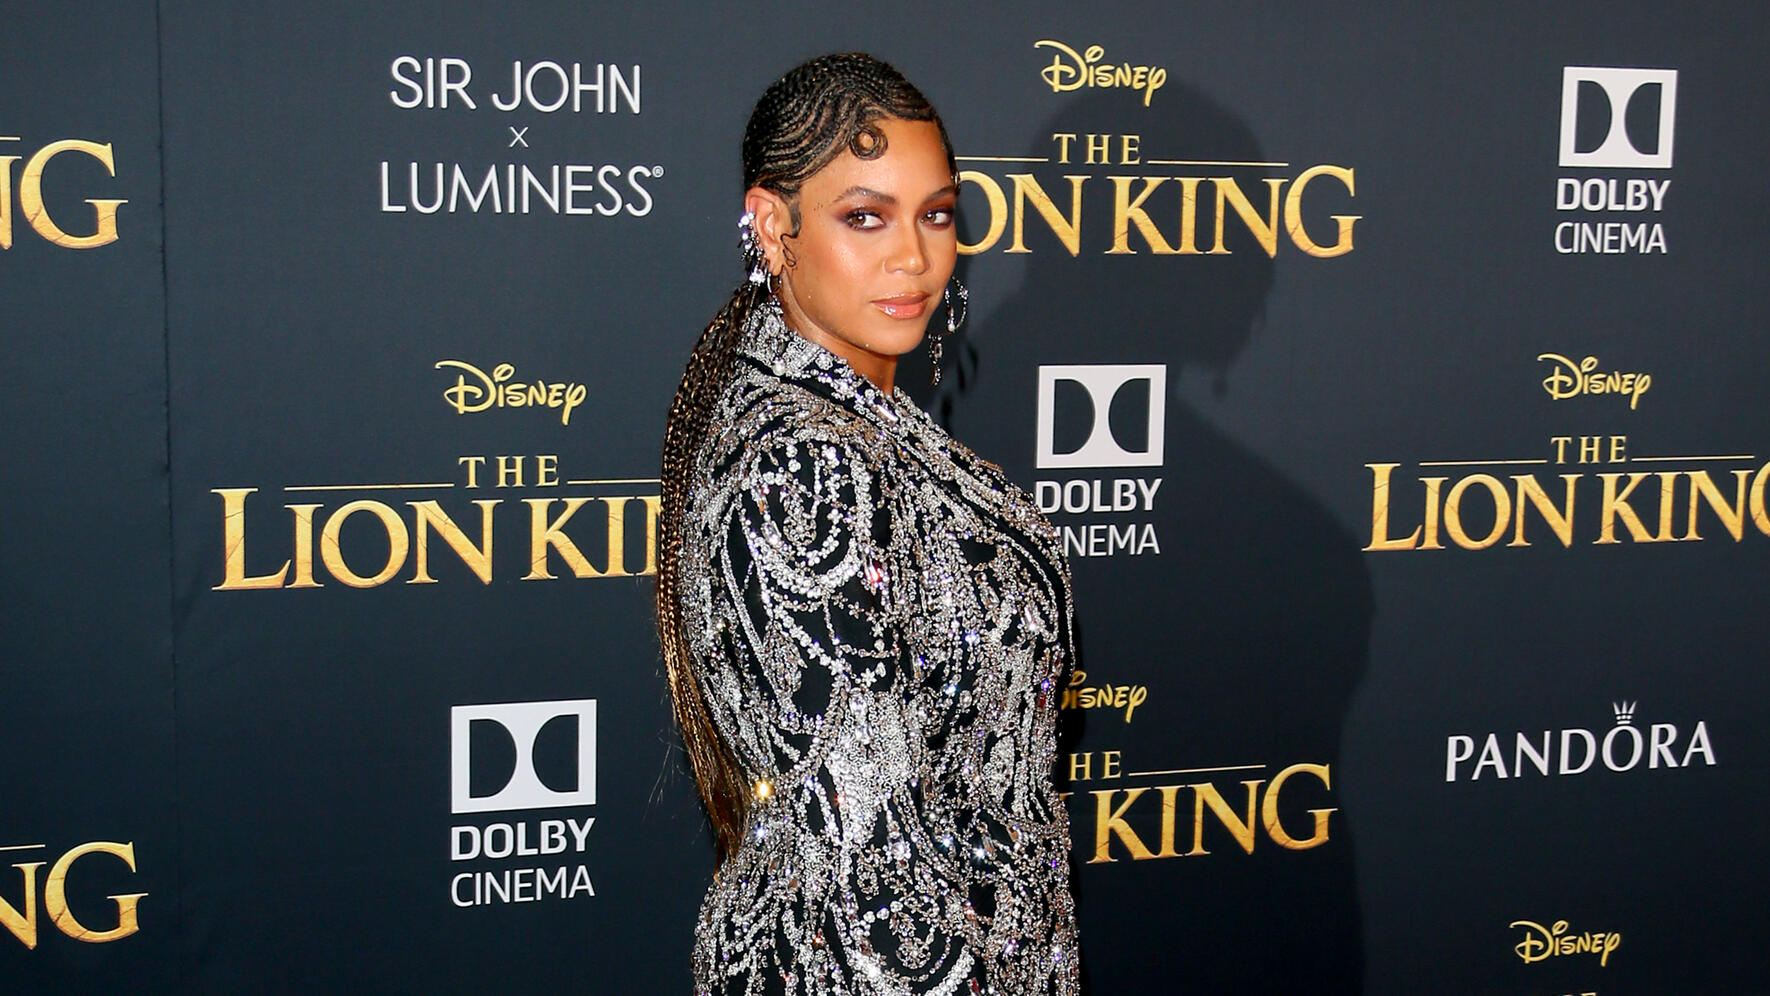 """HOLLYWOOD, CALIFORNIA - JULY 09: Beyoncé attends the premiere of Disney's """"The Lion King"""" at Dolby Theatre on July 09, 2019 in Hollywood, California. (Photo by Jean Baptiste Lacroix/WireImage)"""